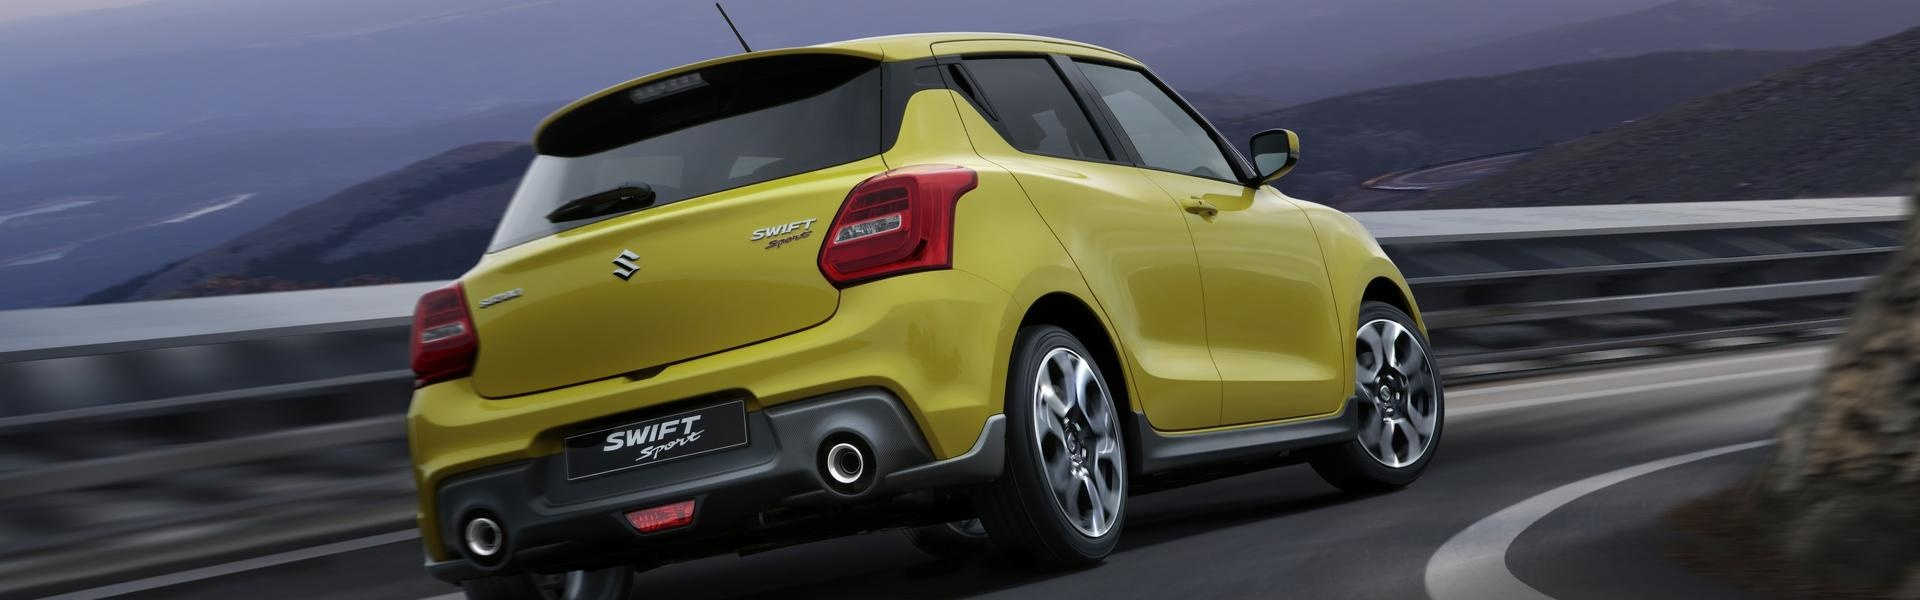 2018-suzuki-swift-sport (3).jpg